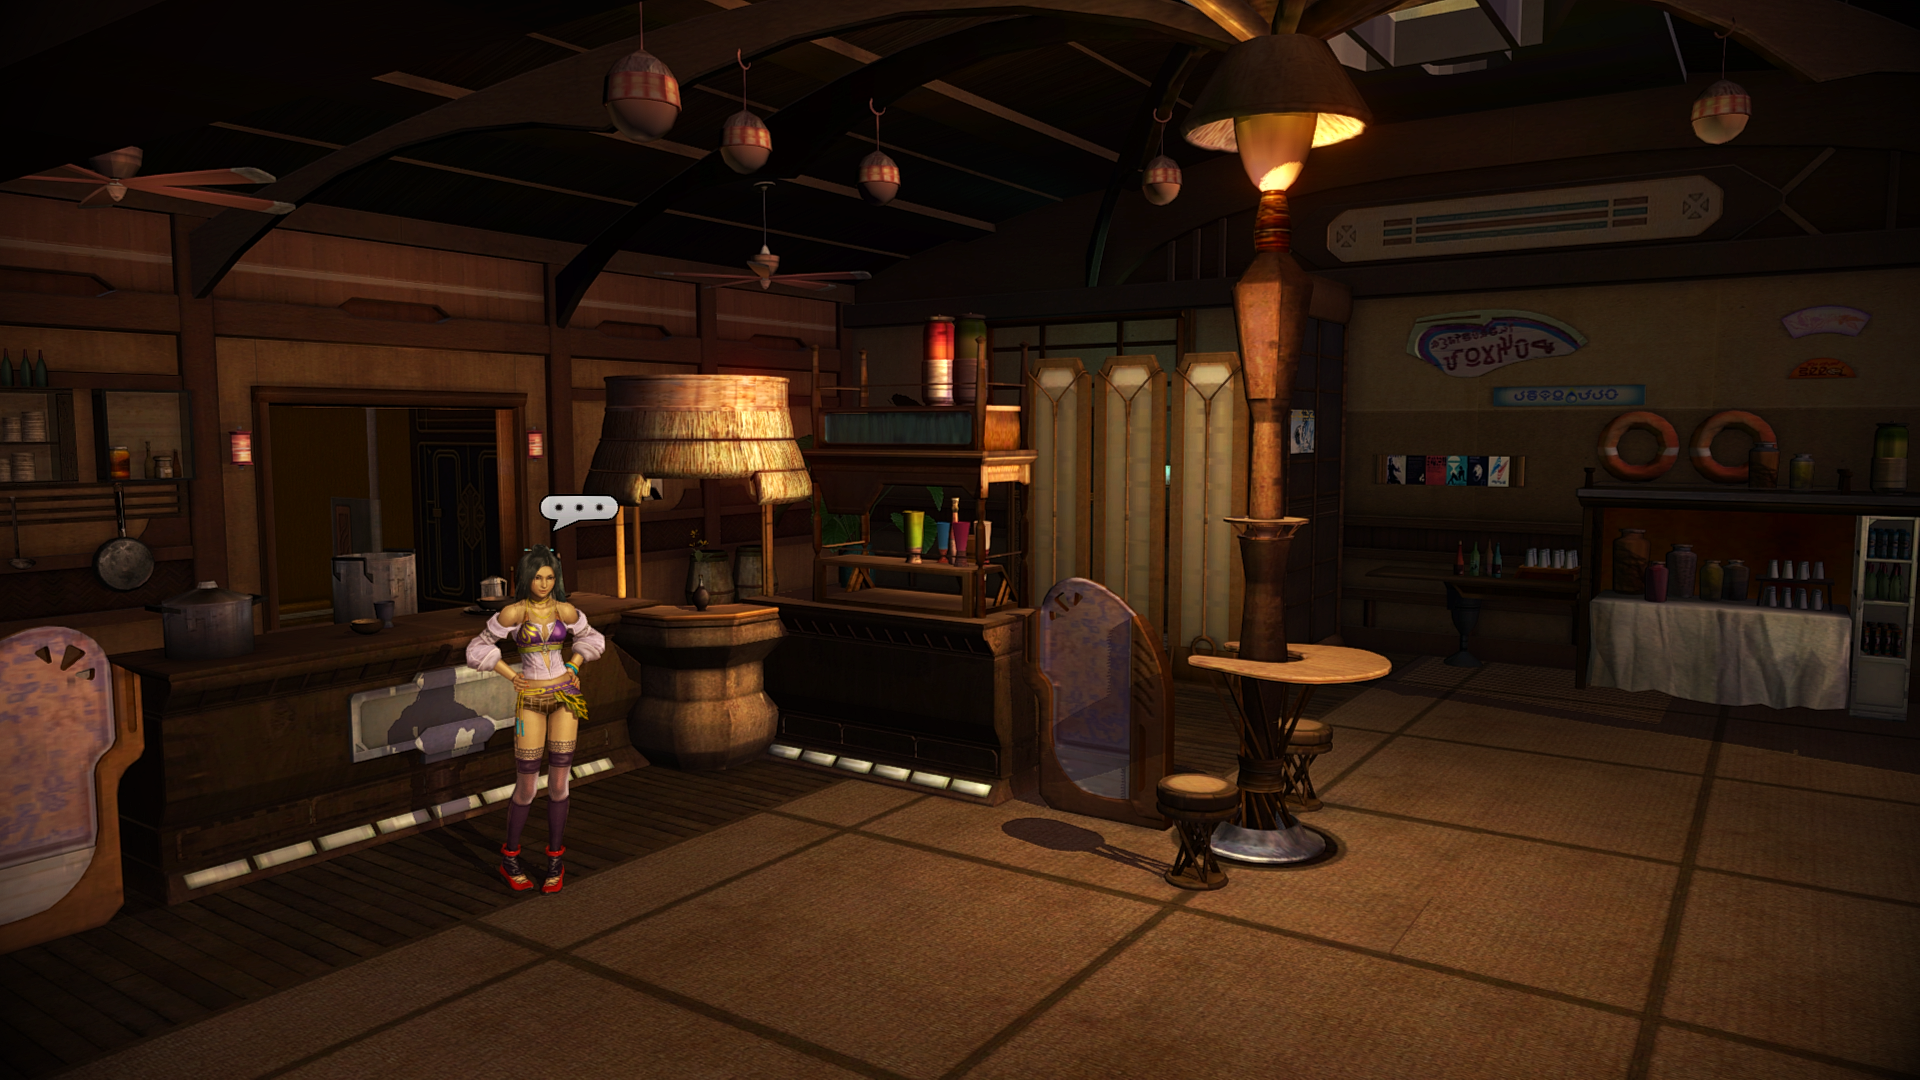 Ffxiii 2 Inside Nora House New Bodhum.png - Inside House, Transparent background PNG HD thumbnail